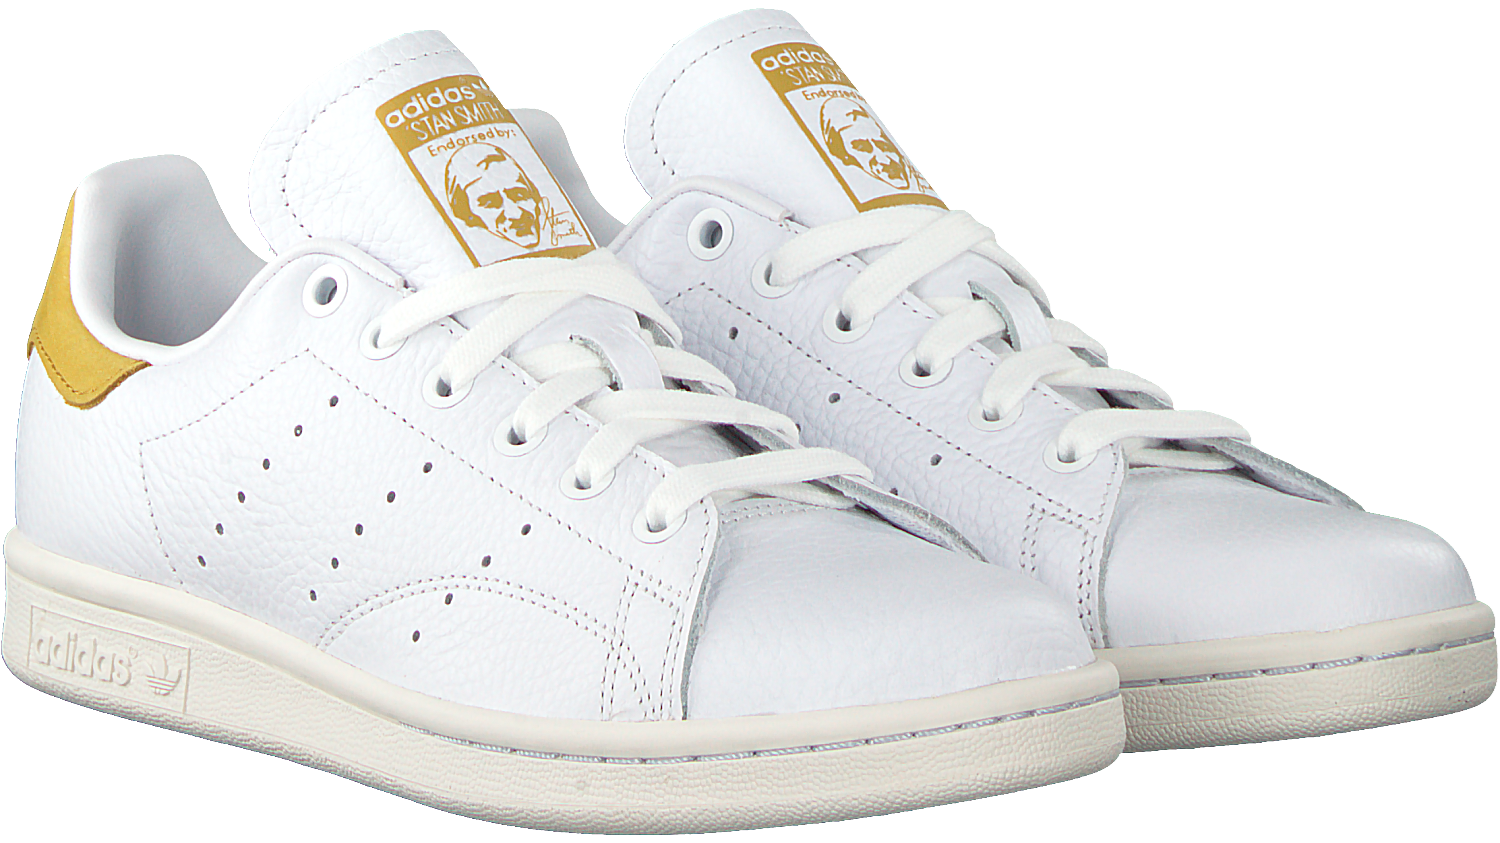 Blauwe ADIDAS Sneakers STAN SMITH DAMES Omoda.nl